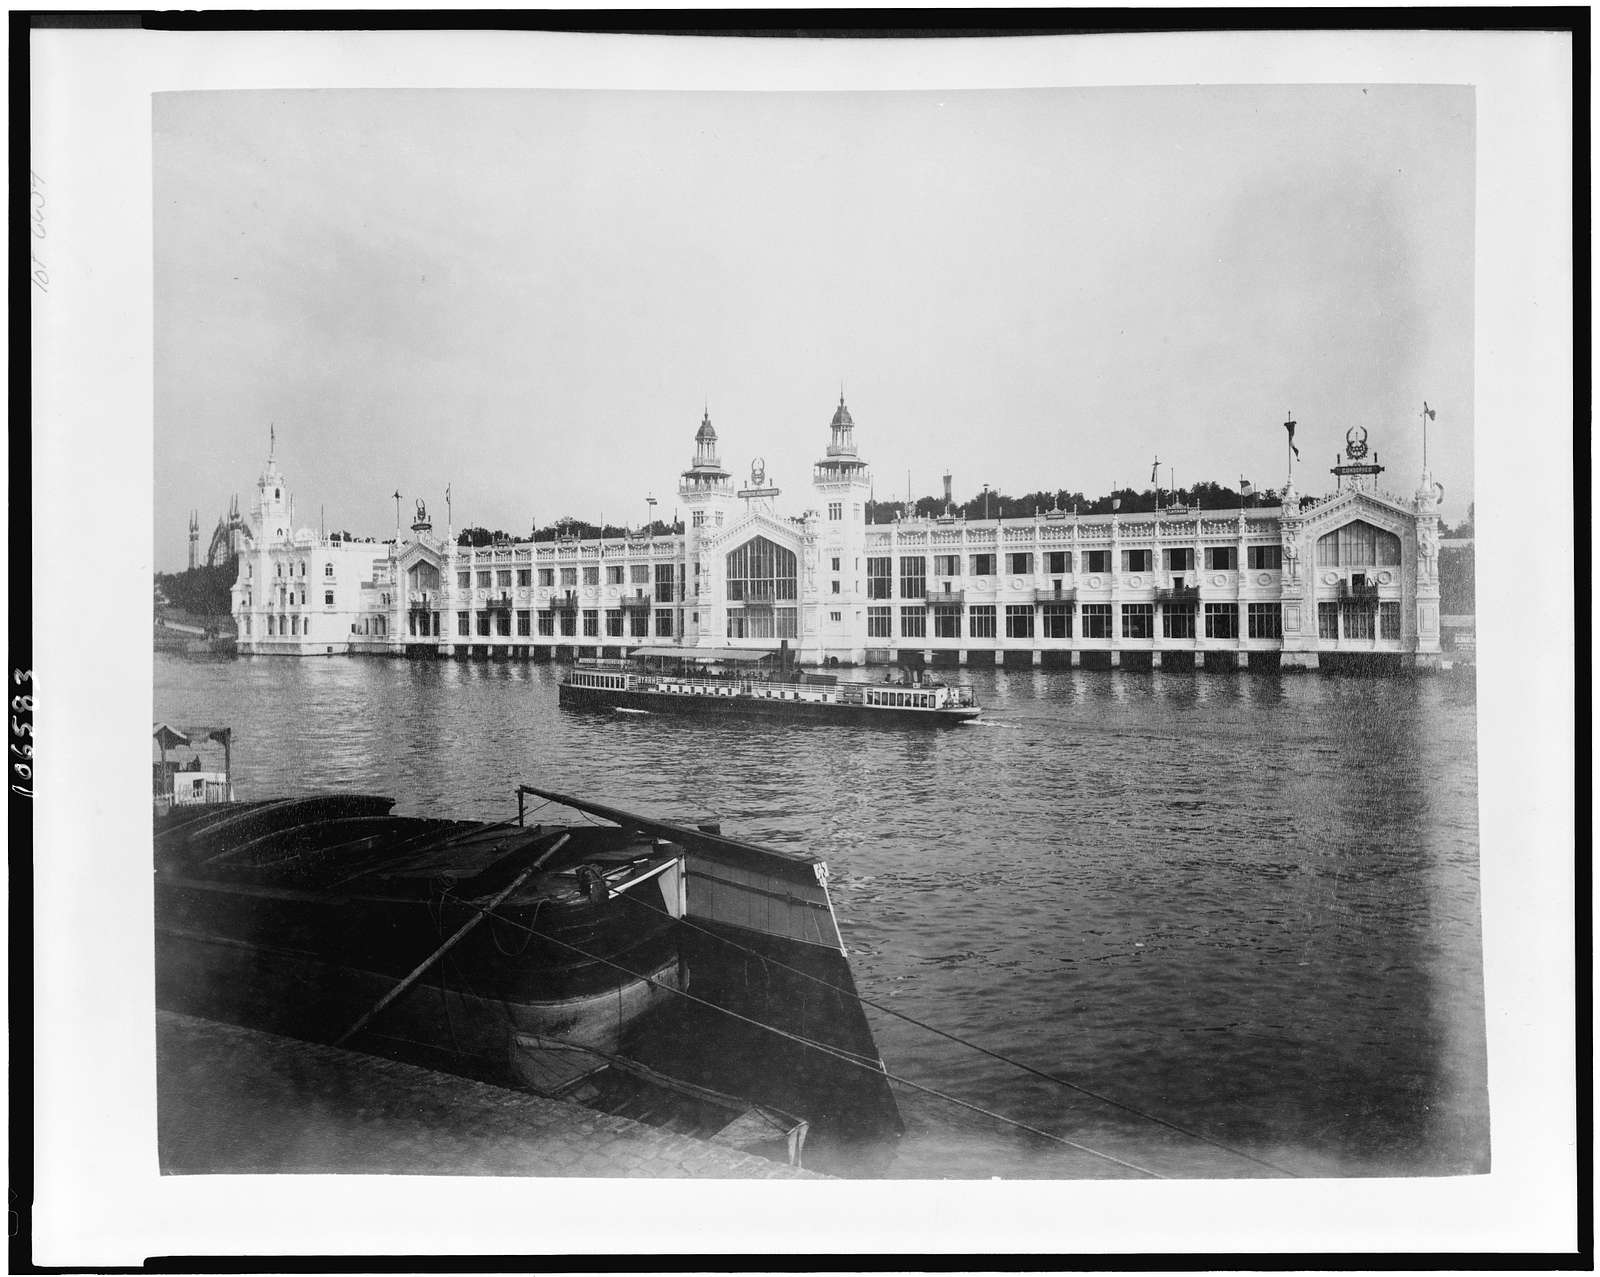 [Food Products Pavilion, with Pavilion of Portugal at far left, seen from across the River Seine, Paris Exposition, 1889]